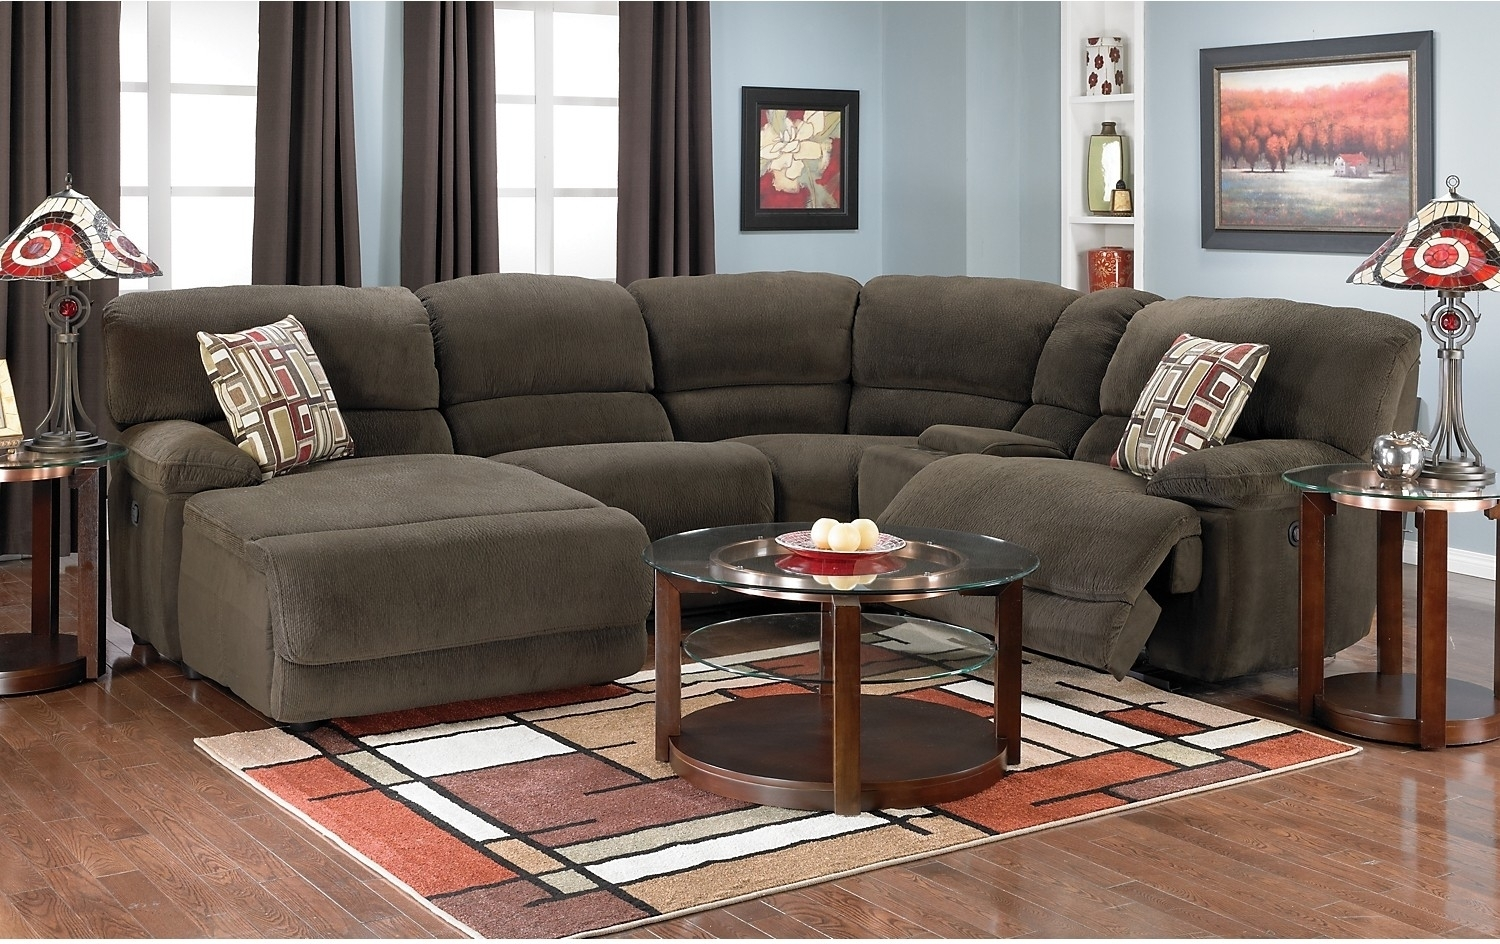 Devon Devon 5 Piece Sectional With Chaise And Sleeper Sofa Within Sectional Sofas At Brick (View 8 of 15)